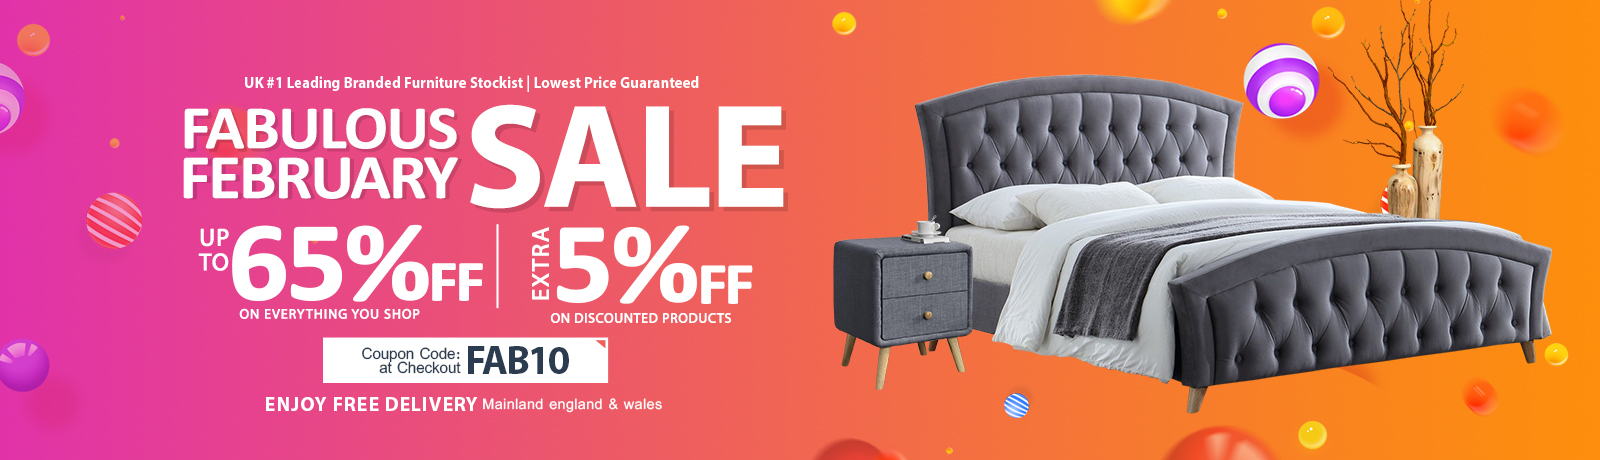 Fabulous February Sale at Online Furniture Store